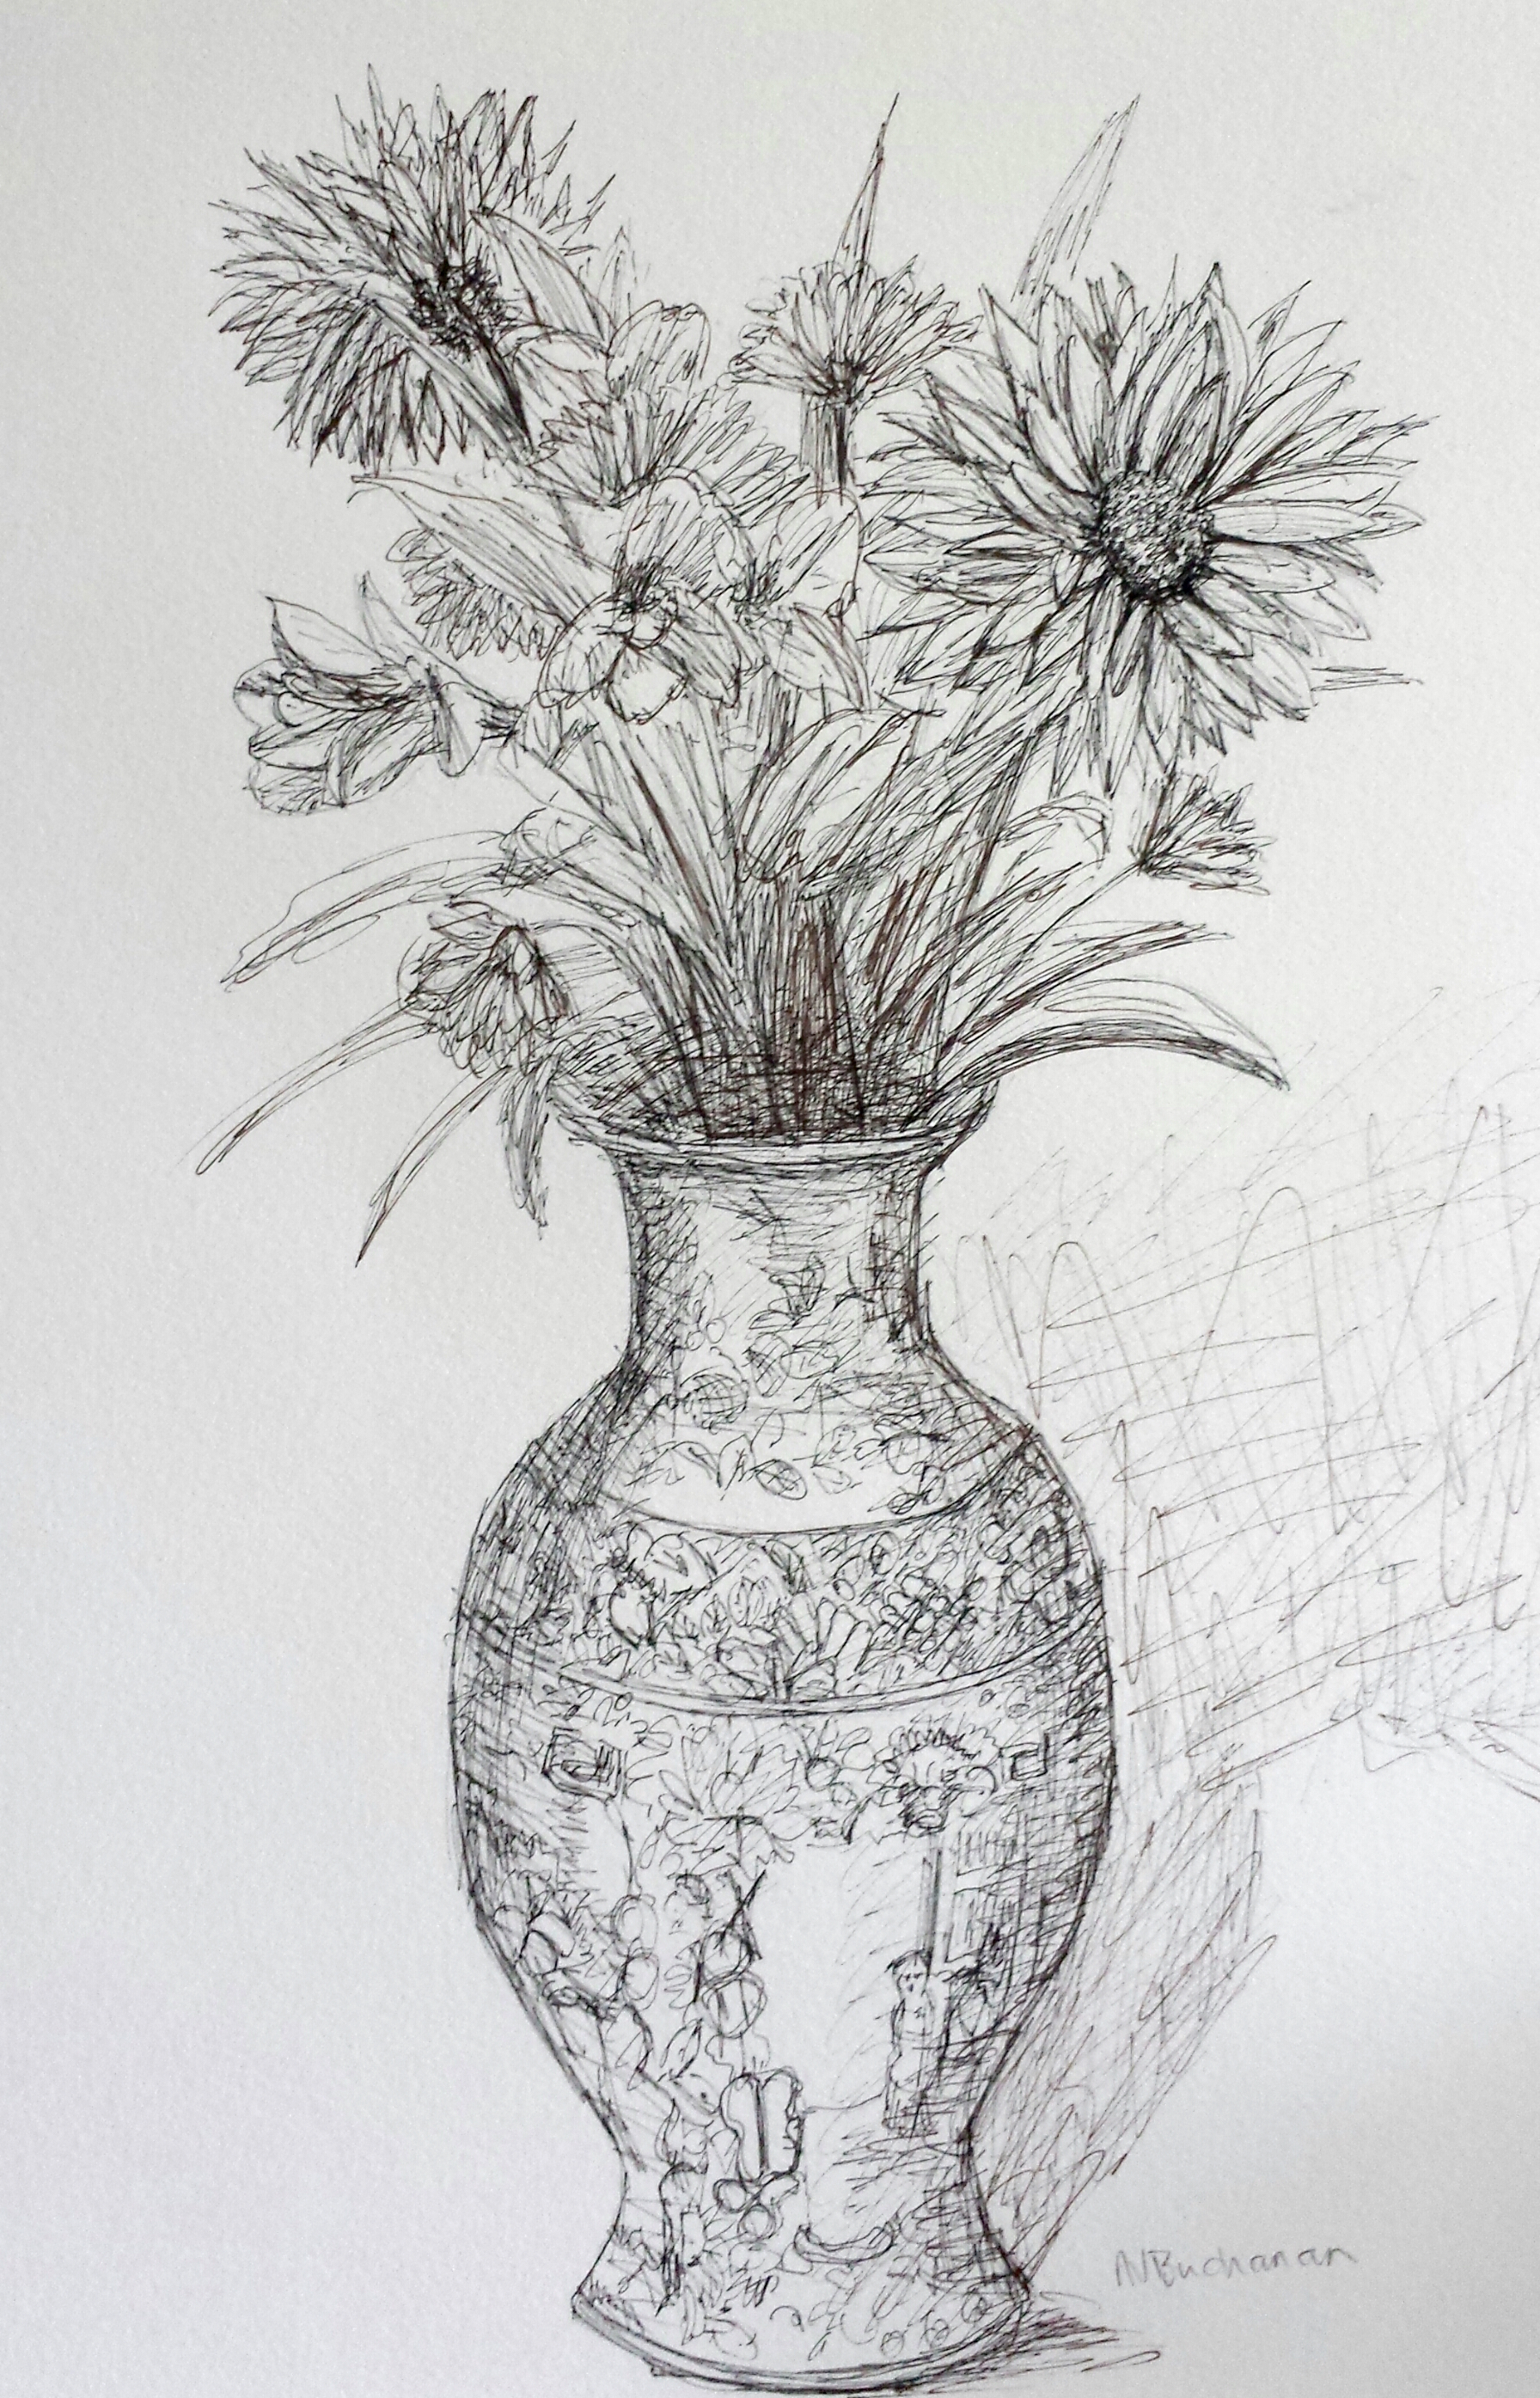 Vase of Flowers, pen and ink, 9 in x 12 in, 2016.